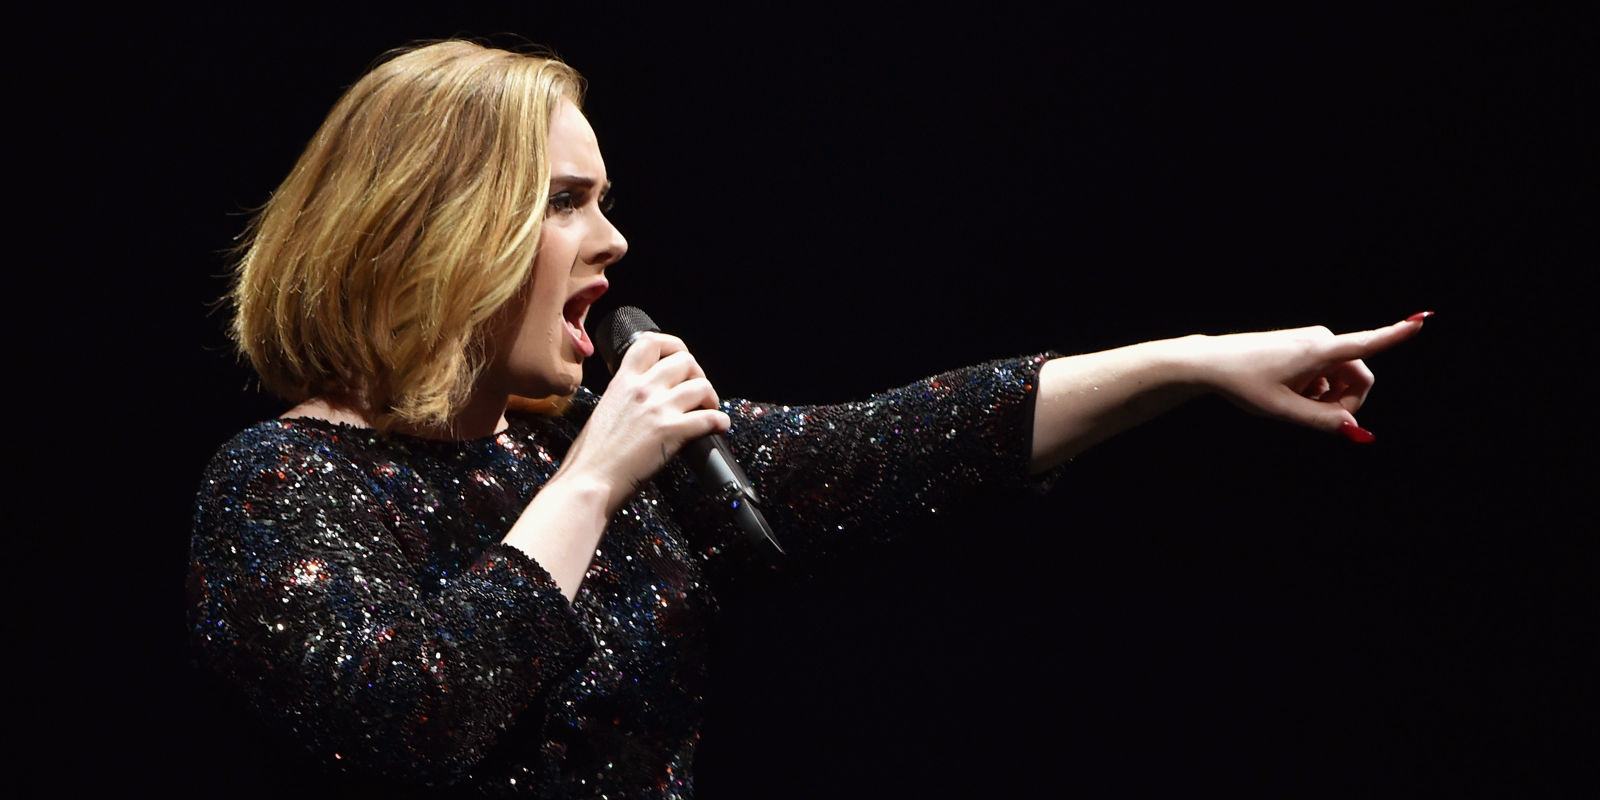 adele-estalla-contra-una-fan-en-pleno-concierto